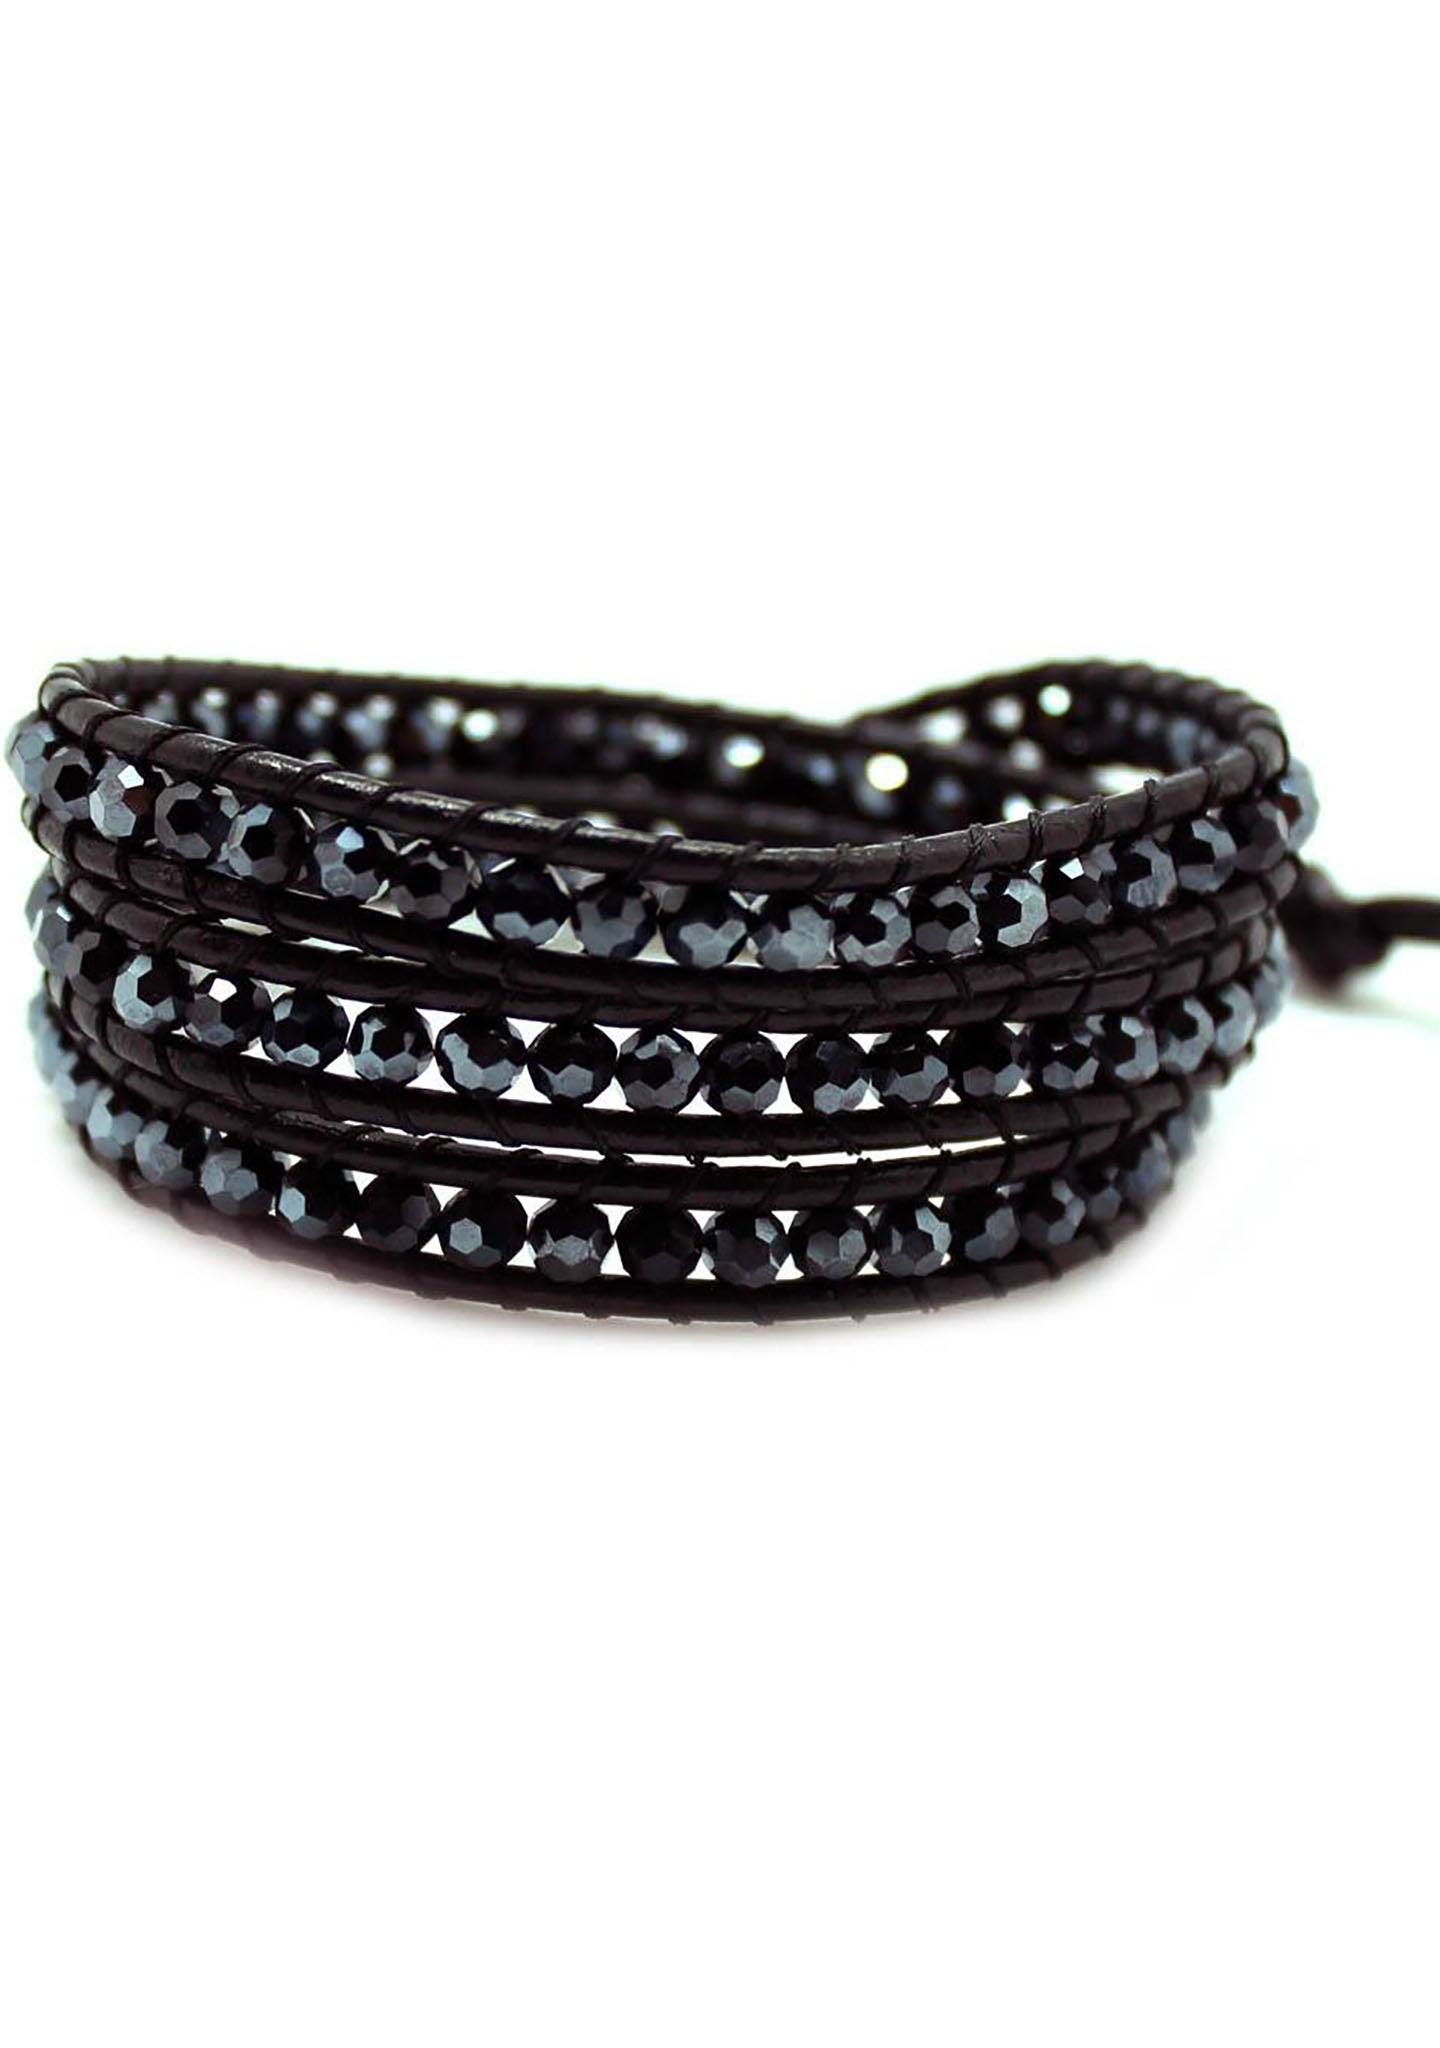 7 LUXE Single Multi Beaded Wrap Bracelet in Black